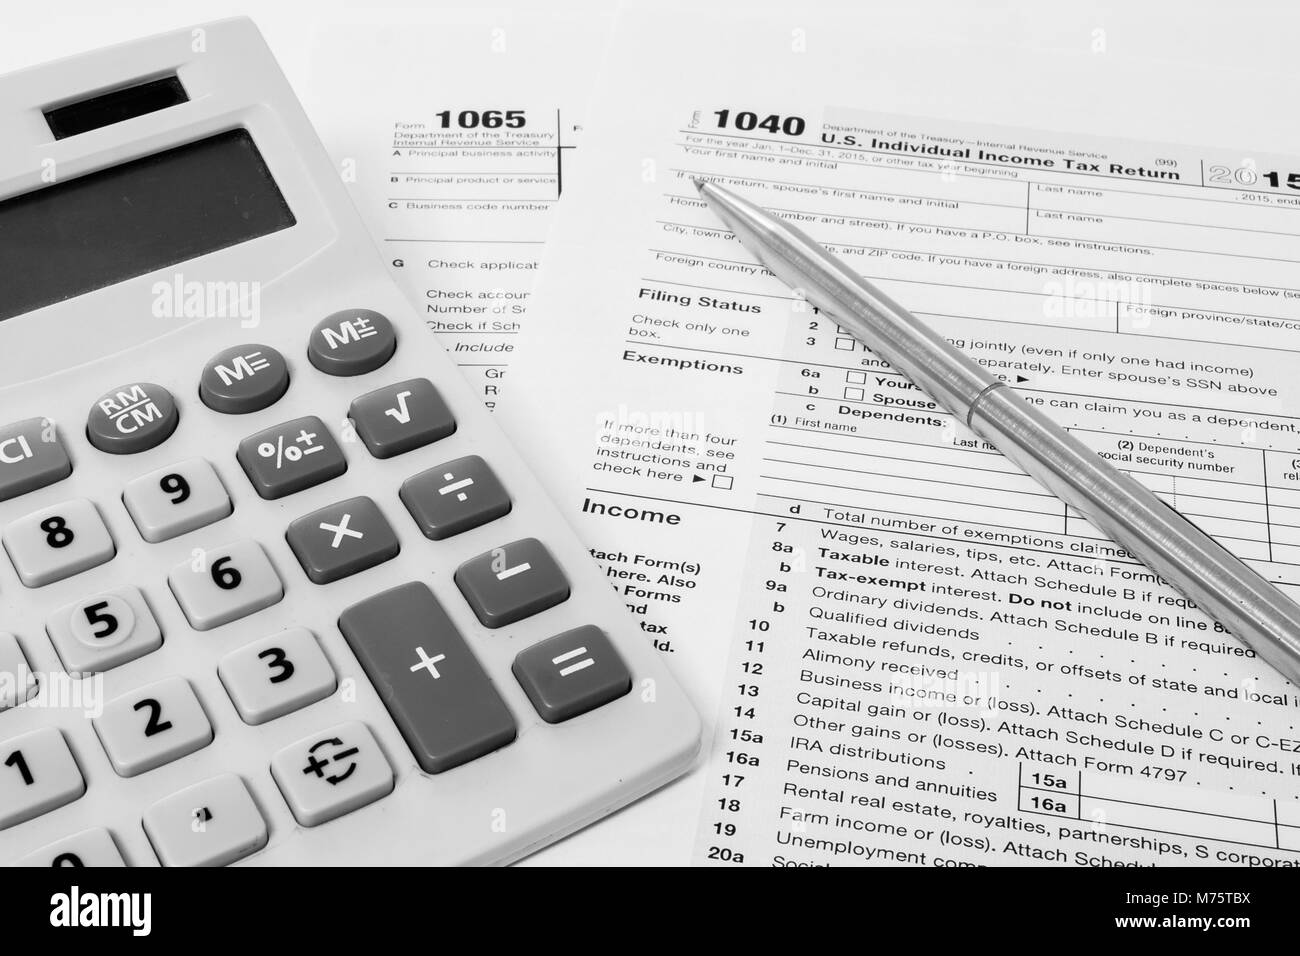 form 1065 calculator  US tax form 14 and 14 with a pen and calculator Stock ...